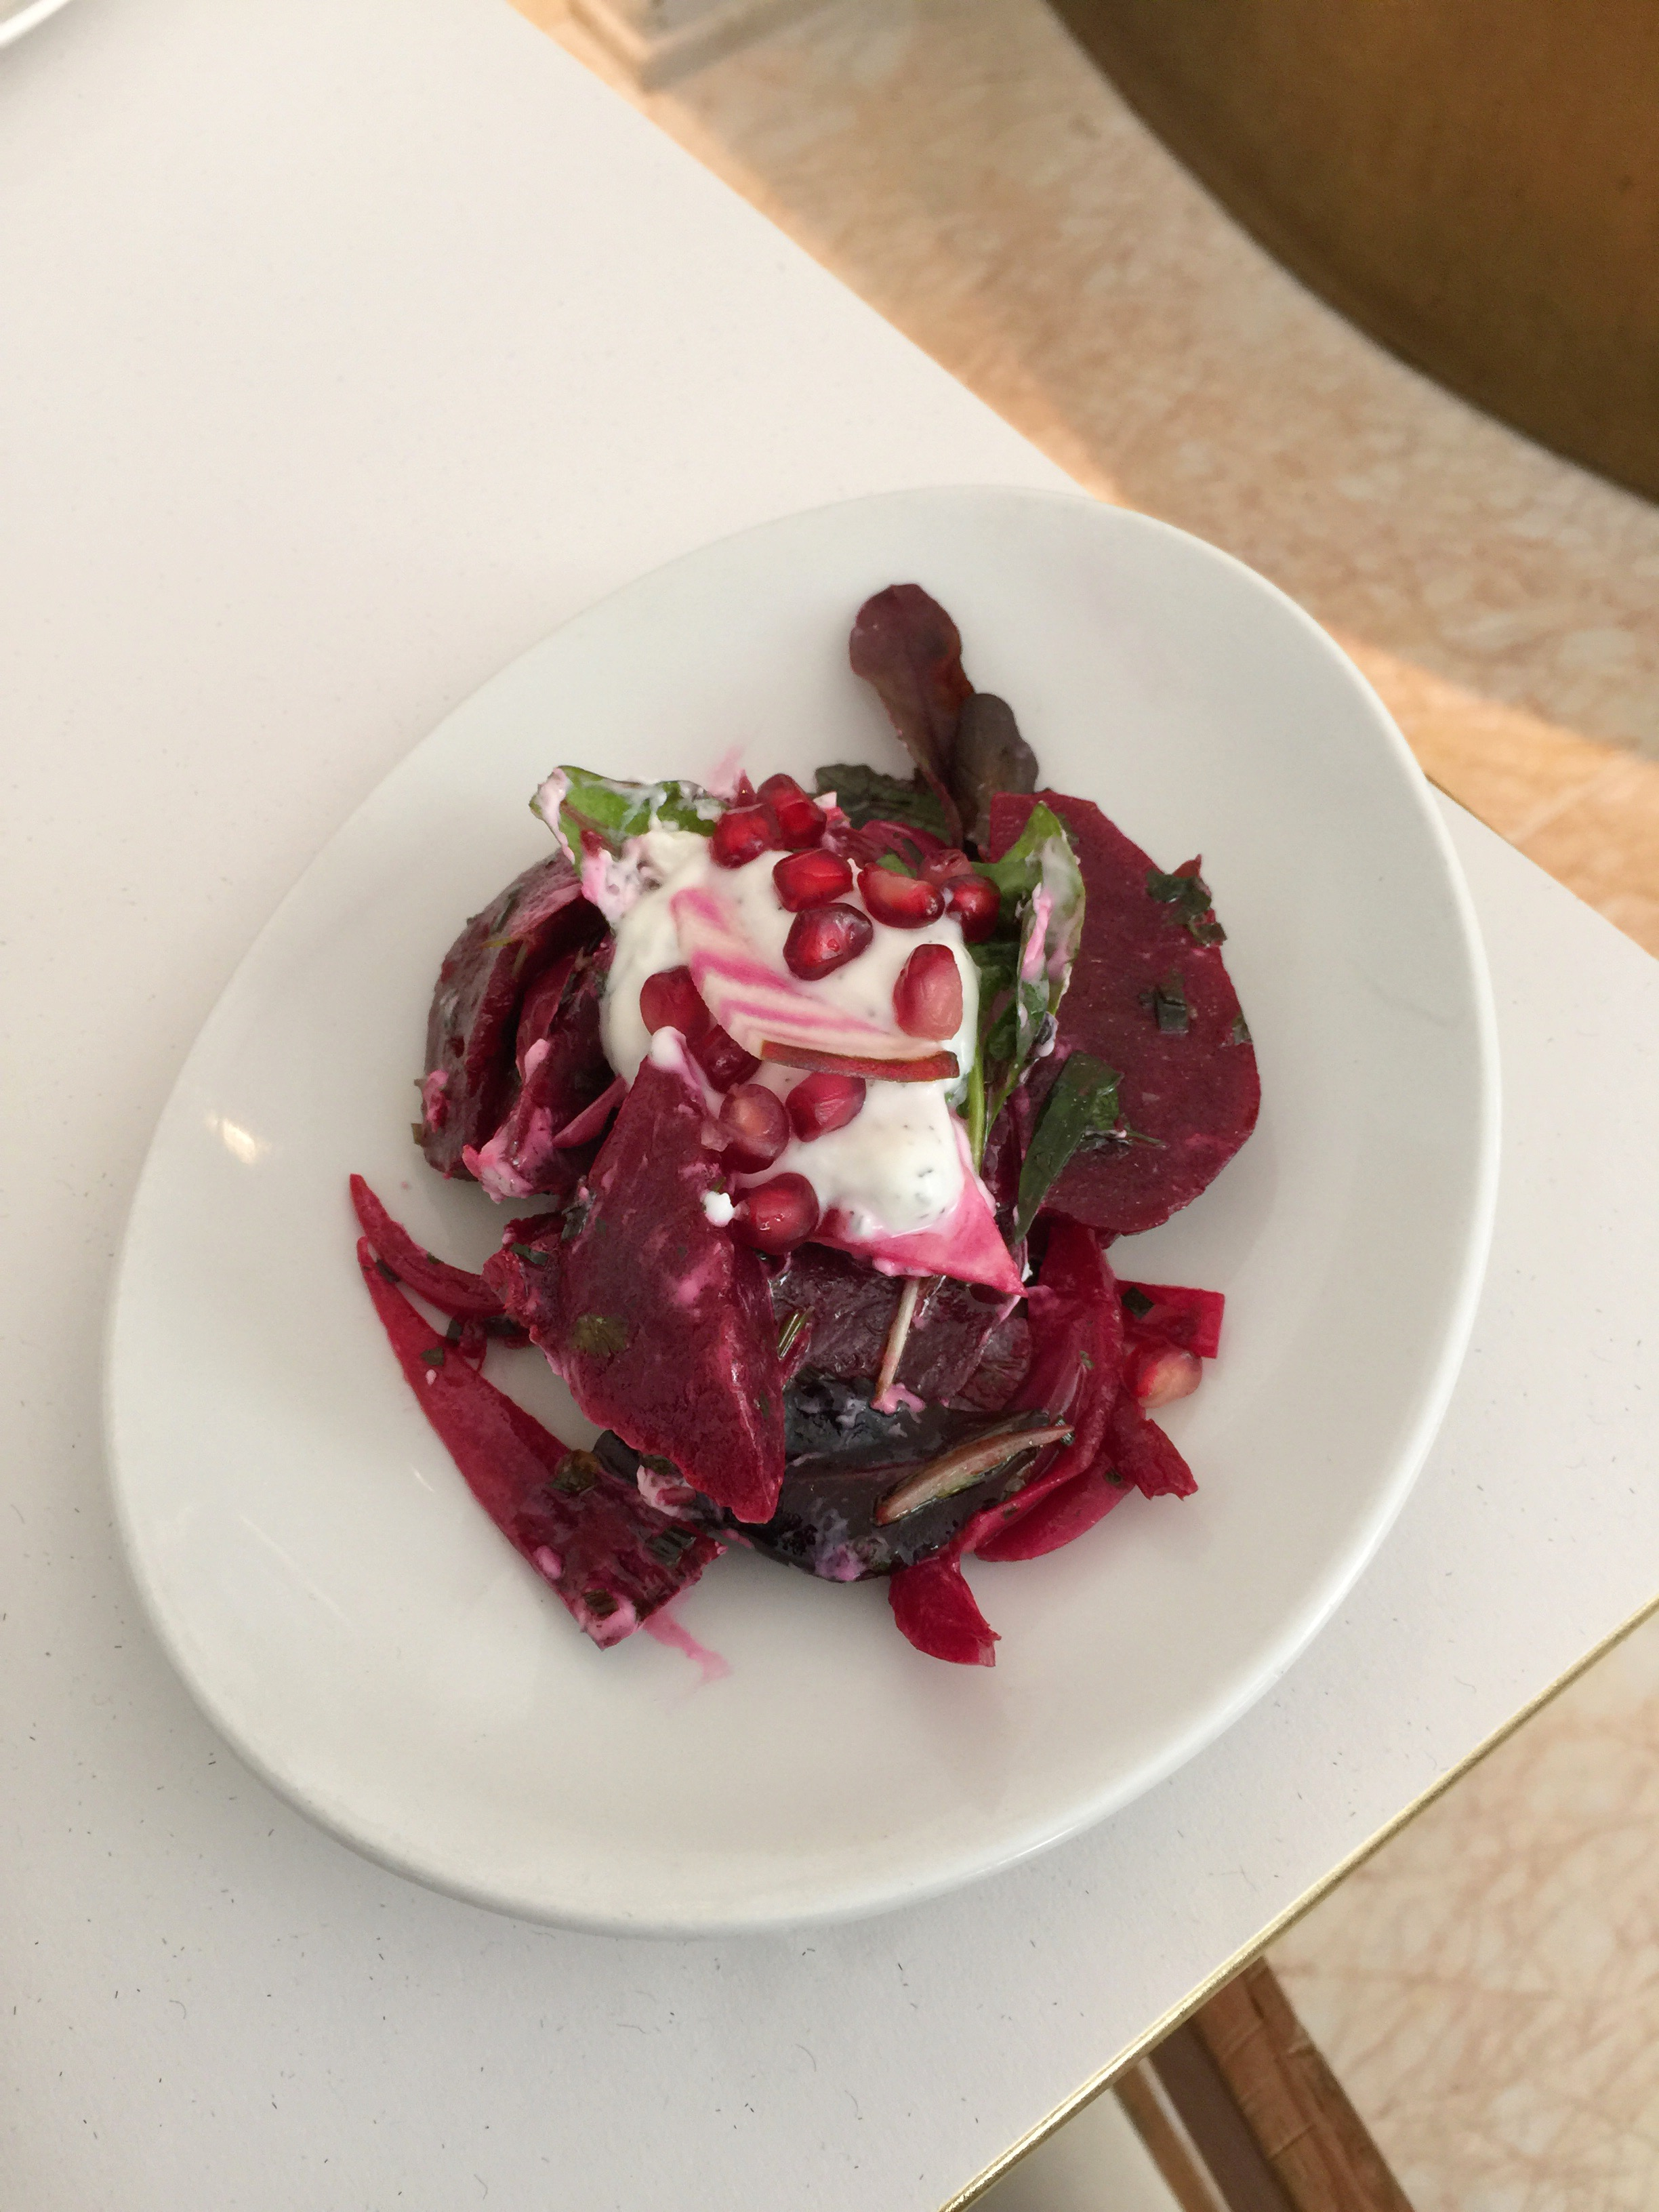 Beetroot, goat's curd and pomegranate seeds